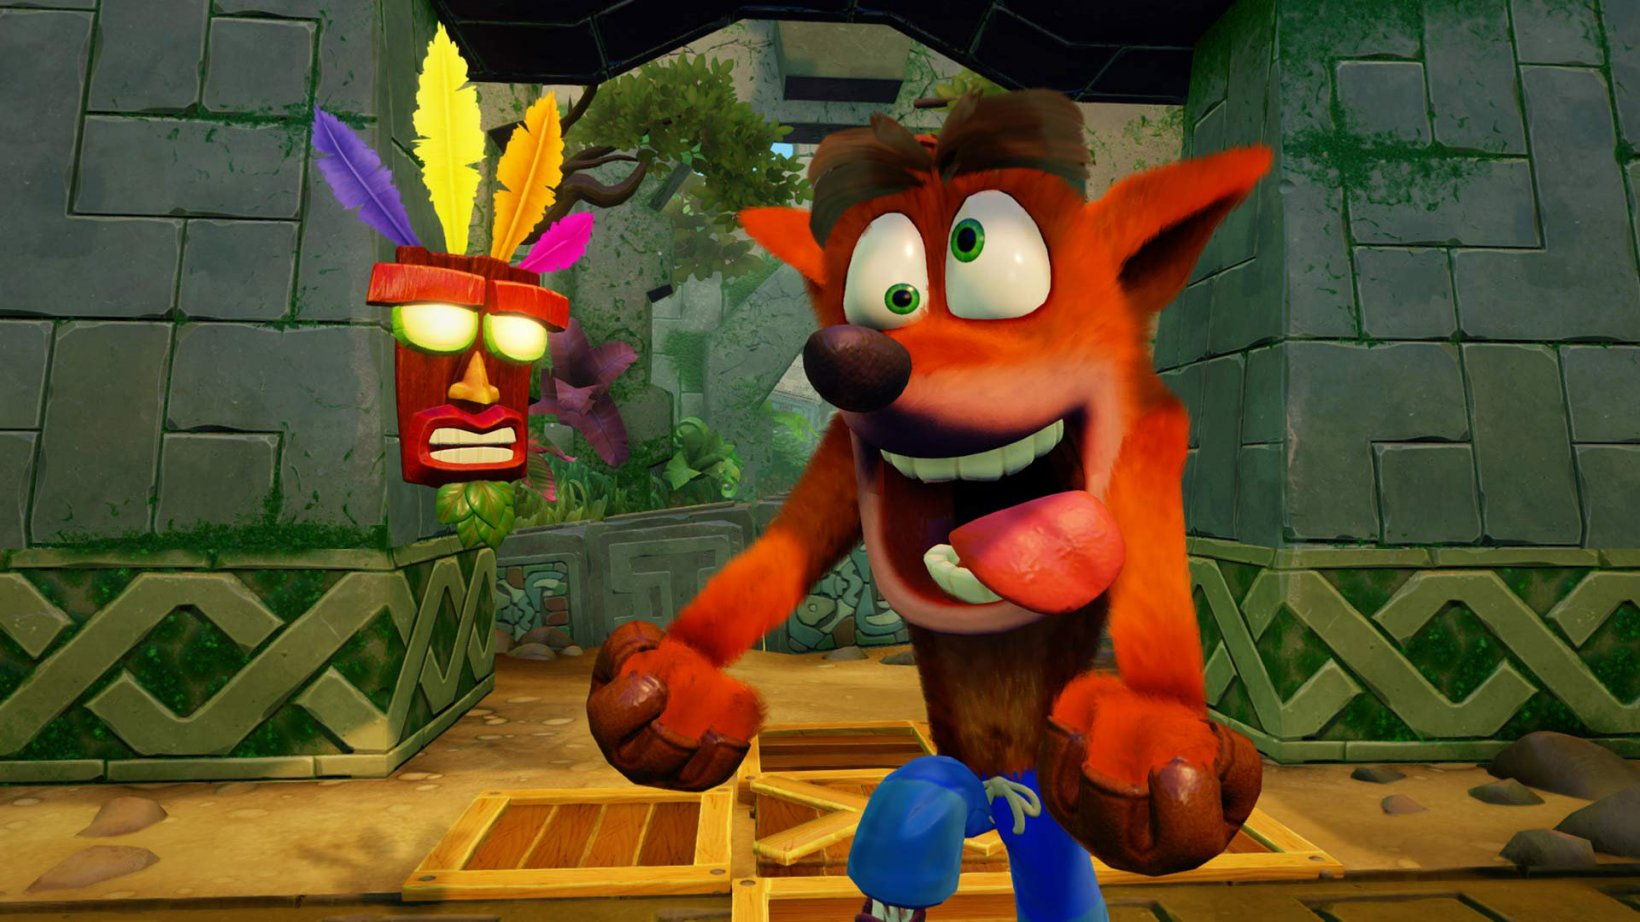 A Crash Bandicoot endless runner mobile game could be on its way